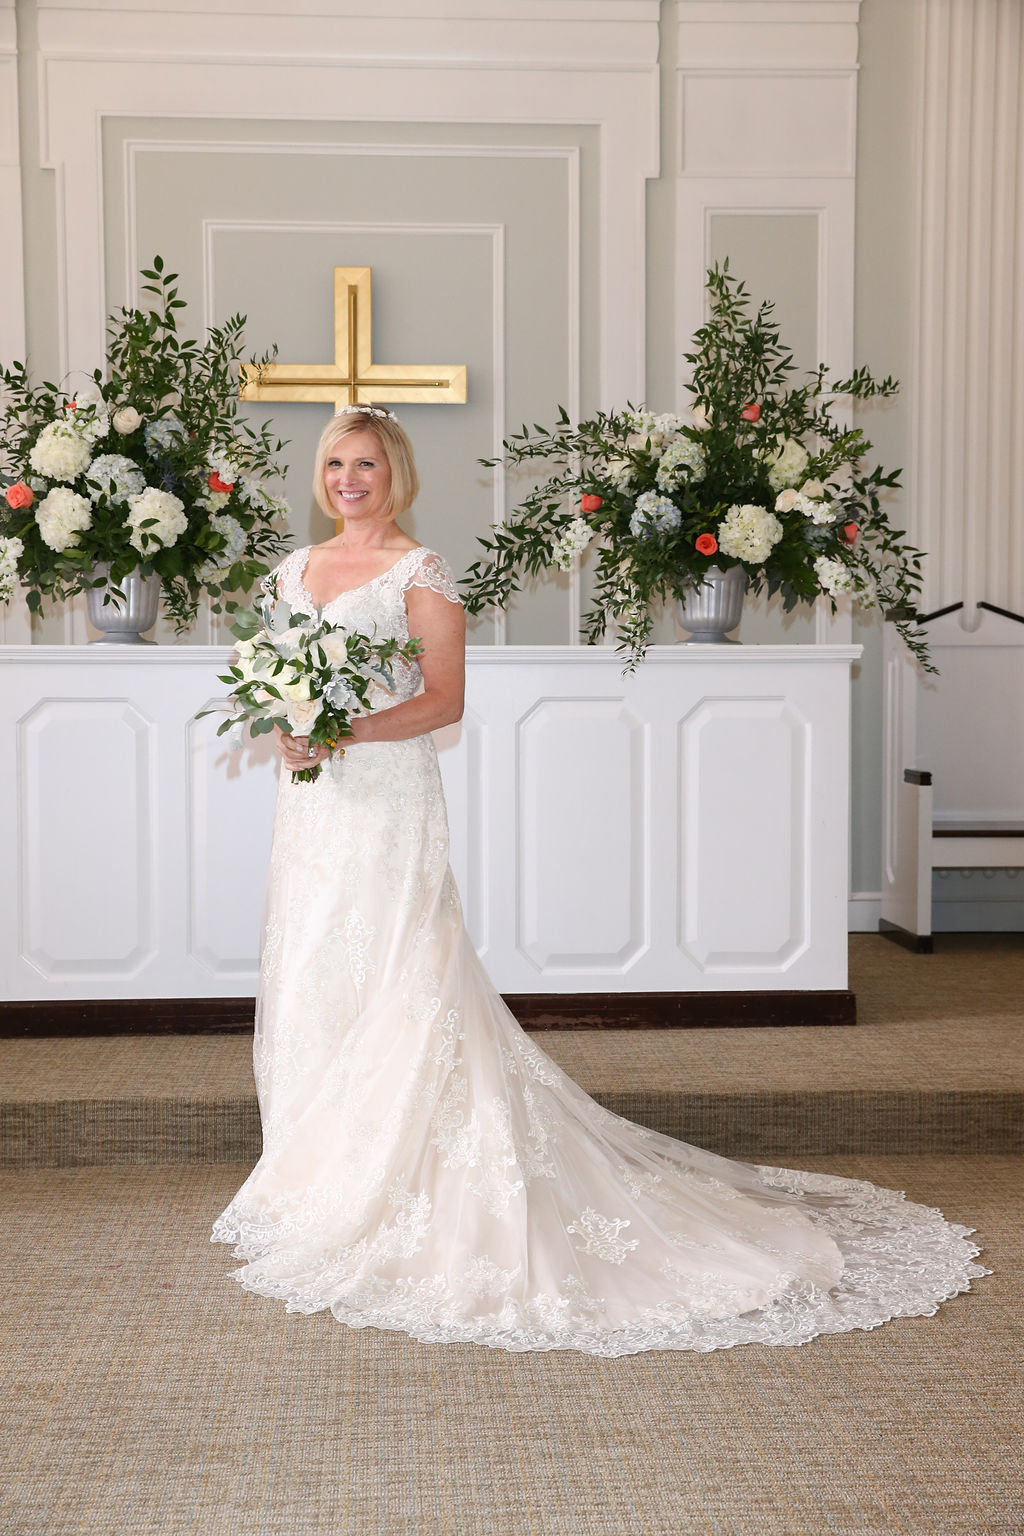 Bride poses with a delicate white bouquet created by Party Blooms for her wedding coordinated by Magnificent Moments Weddings